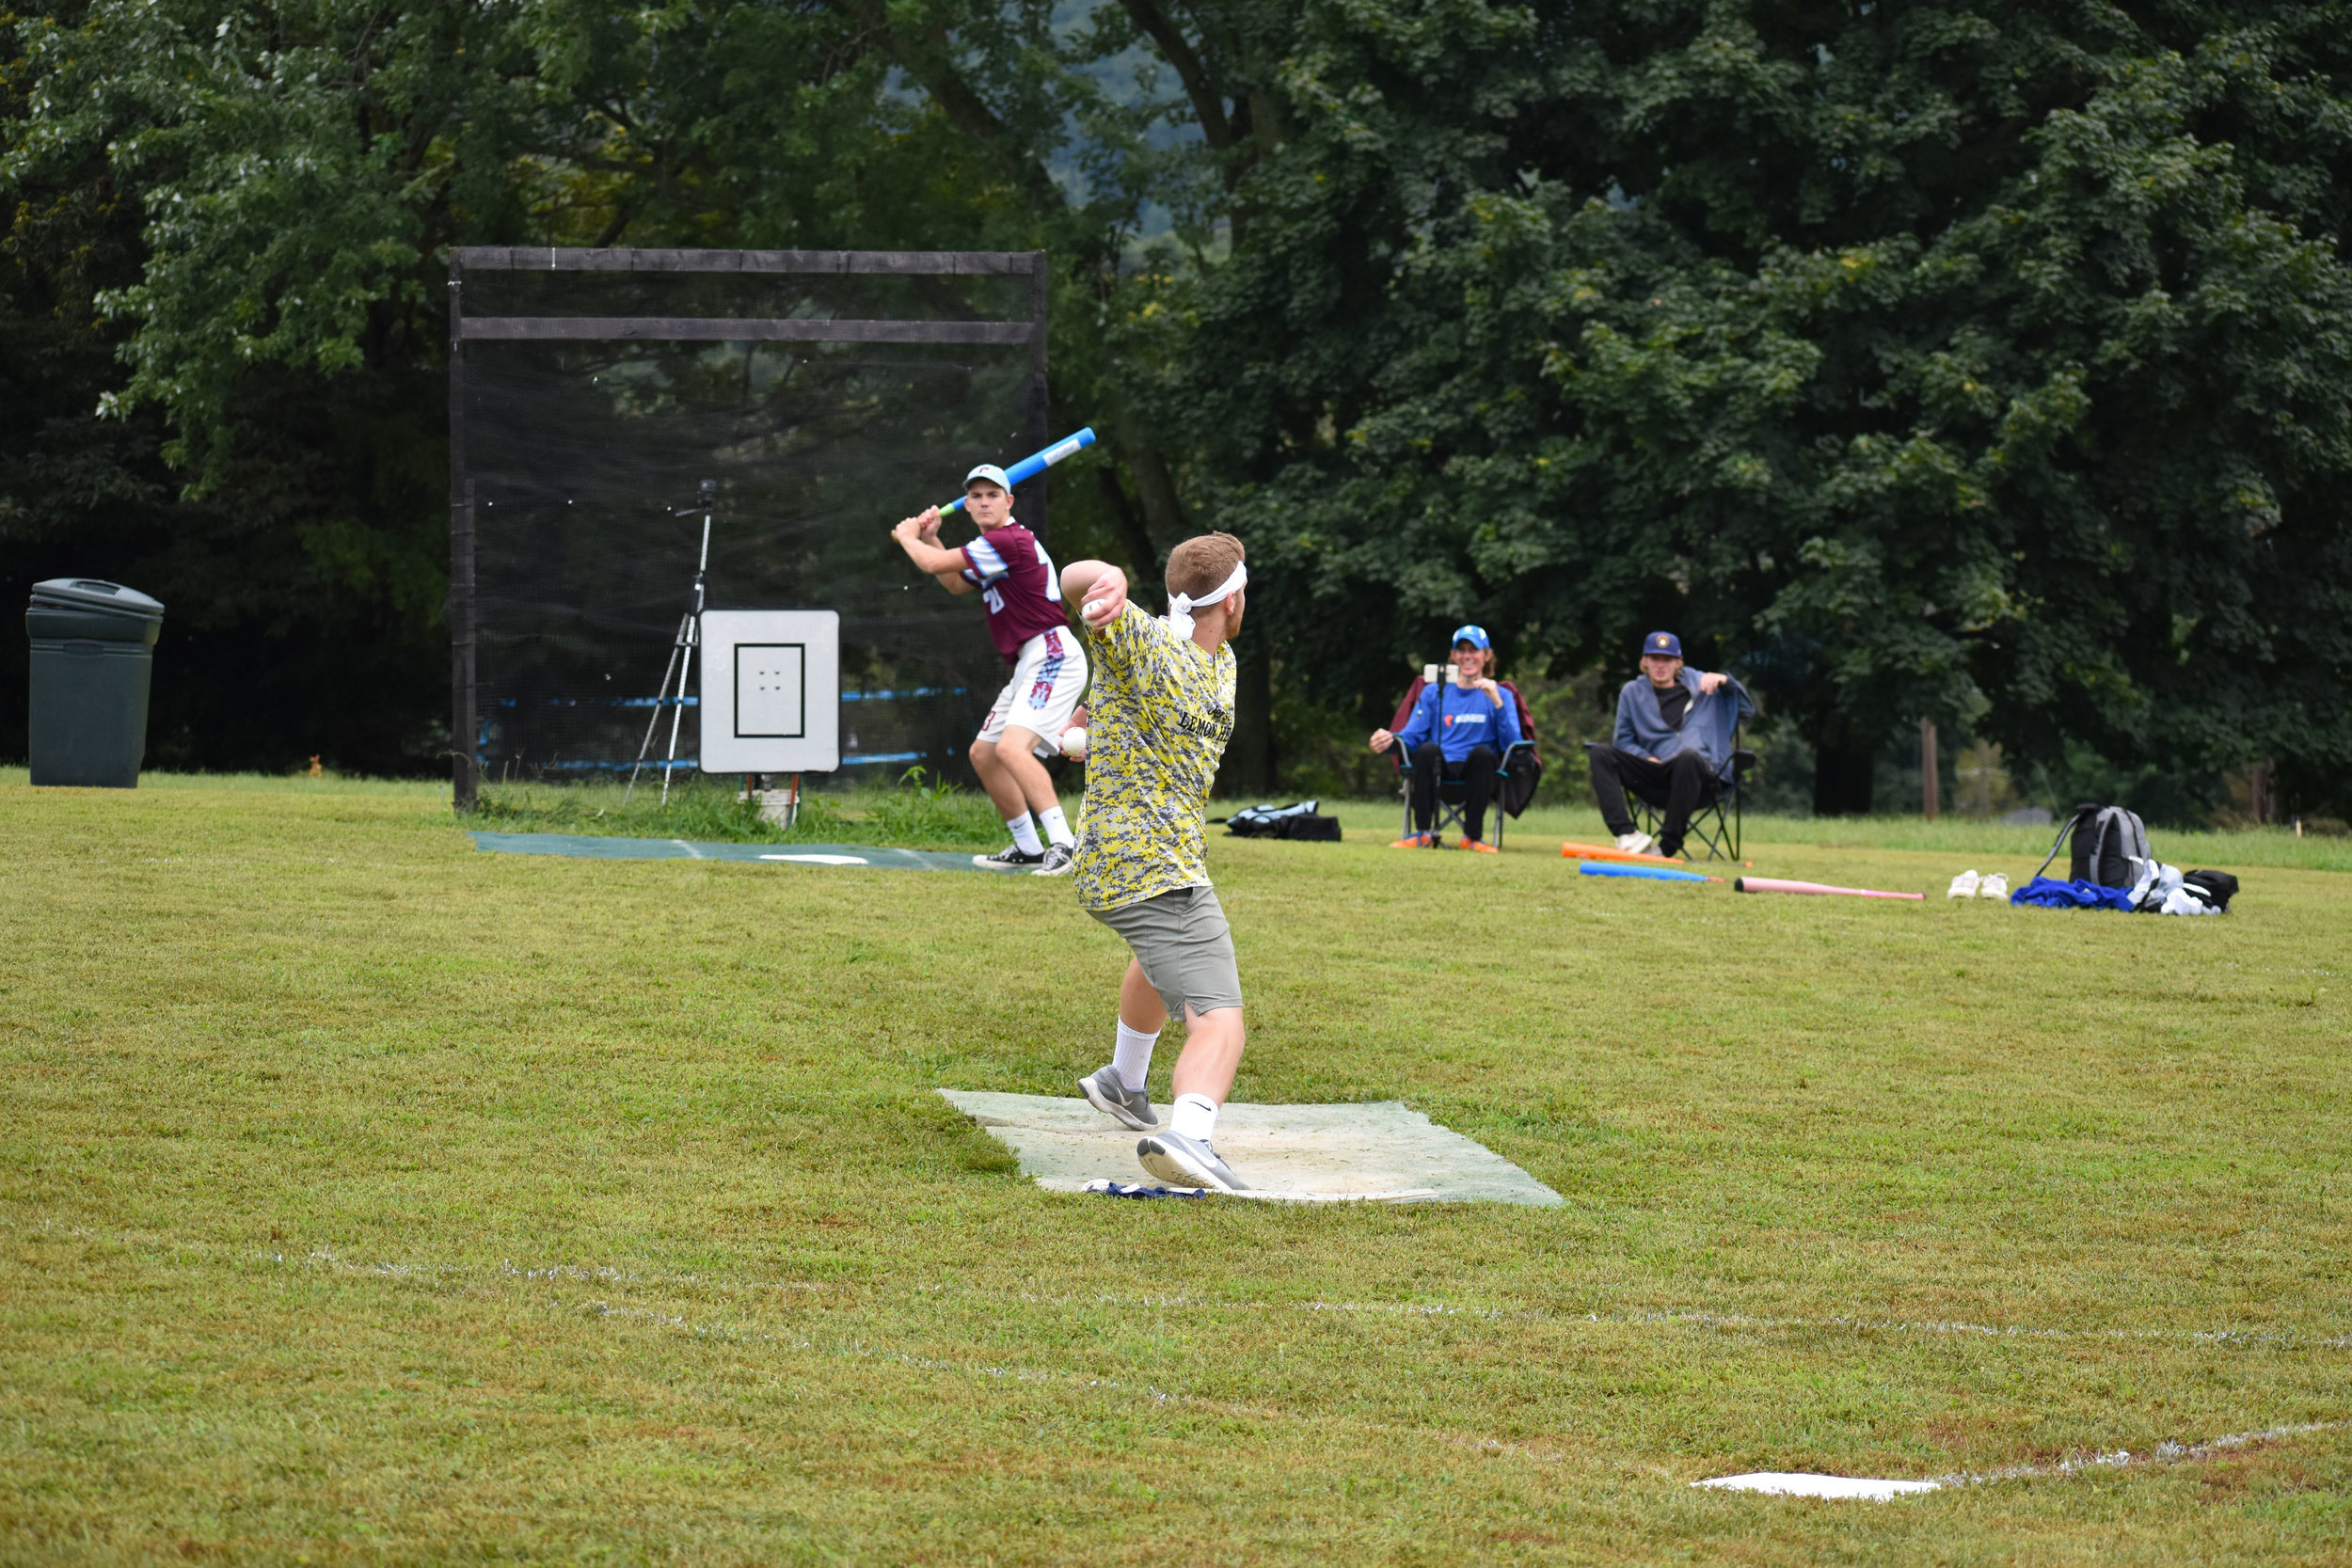 Ray Lutick of the Lemon Heads - shown here pitching to Colin Pollag - was named tournament MVP.